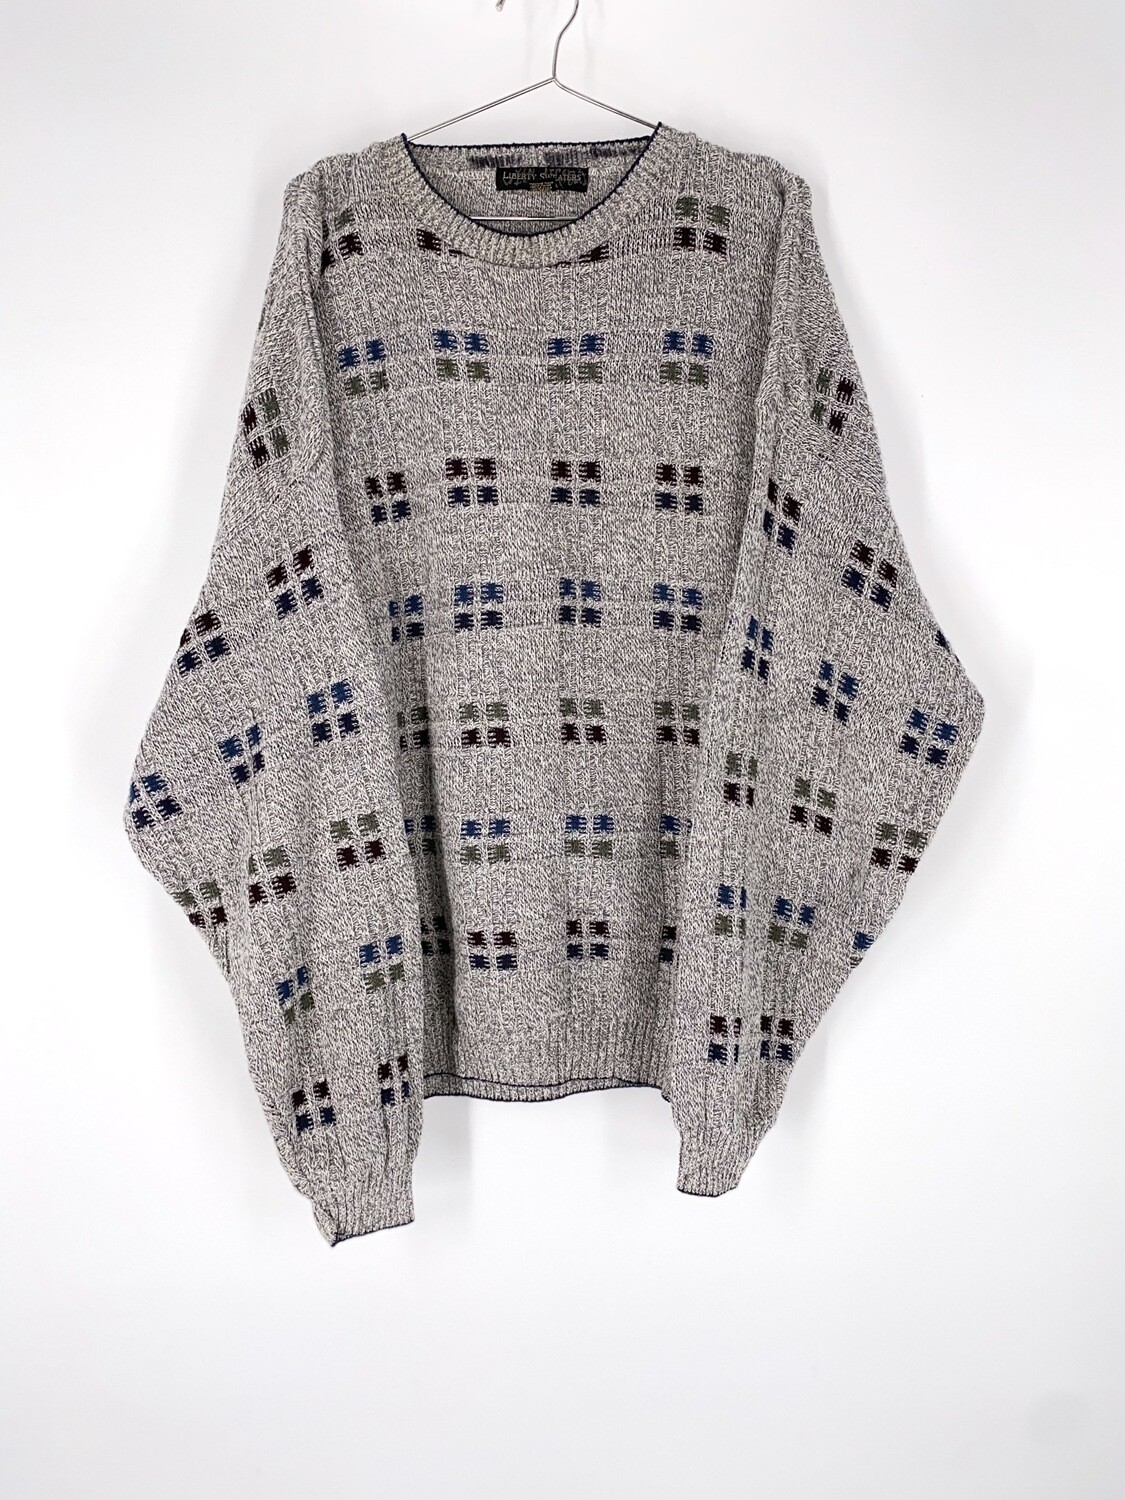 Grey Square Pattern Sweater Size L